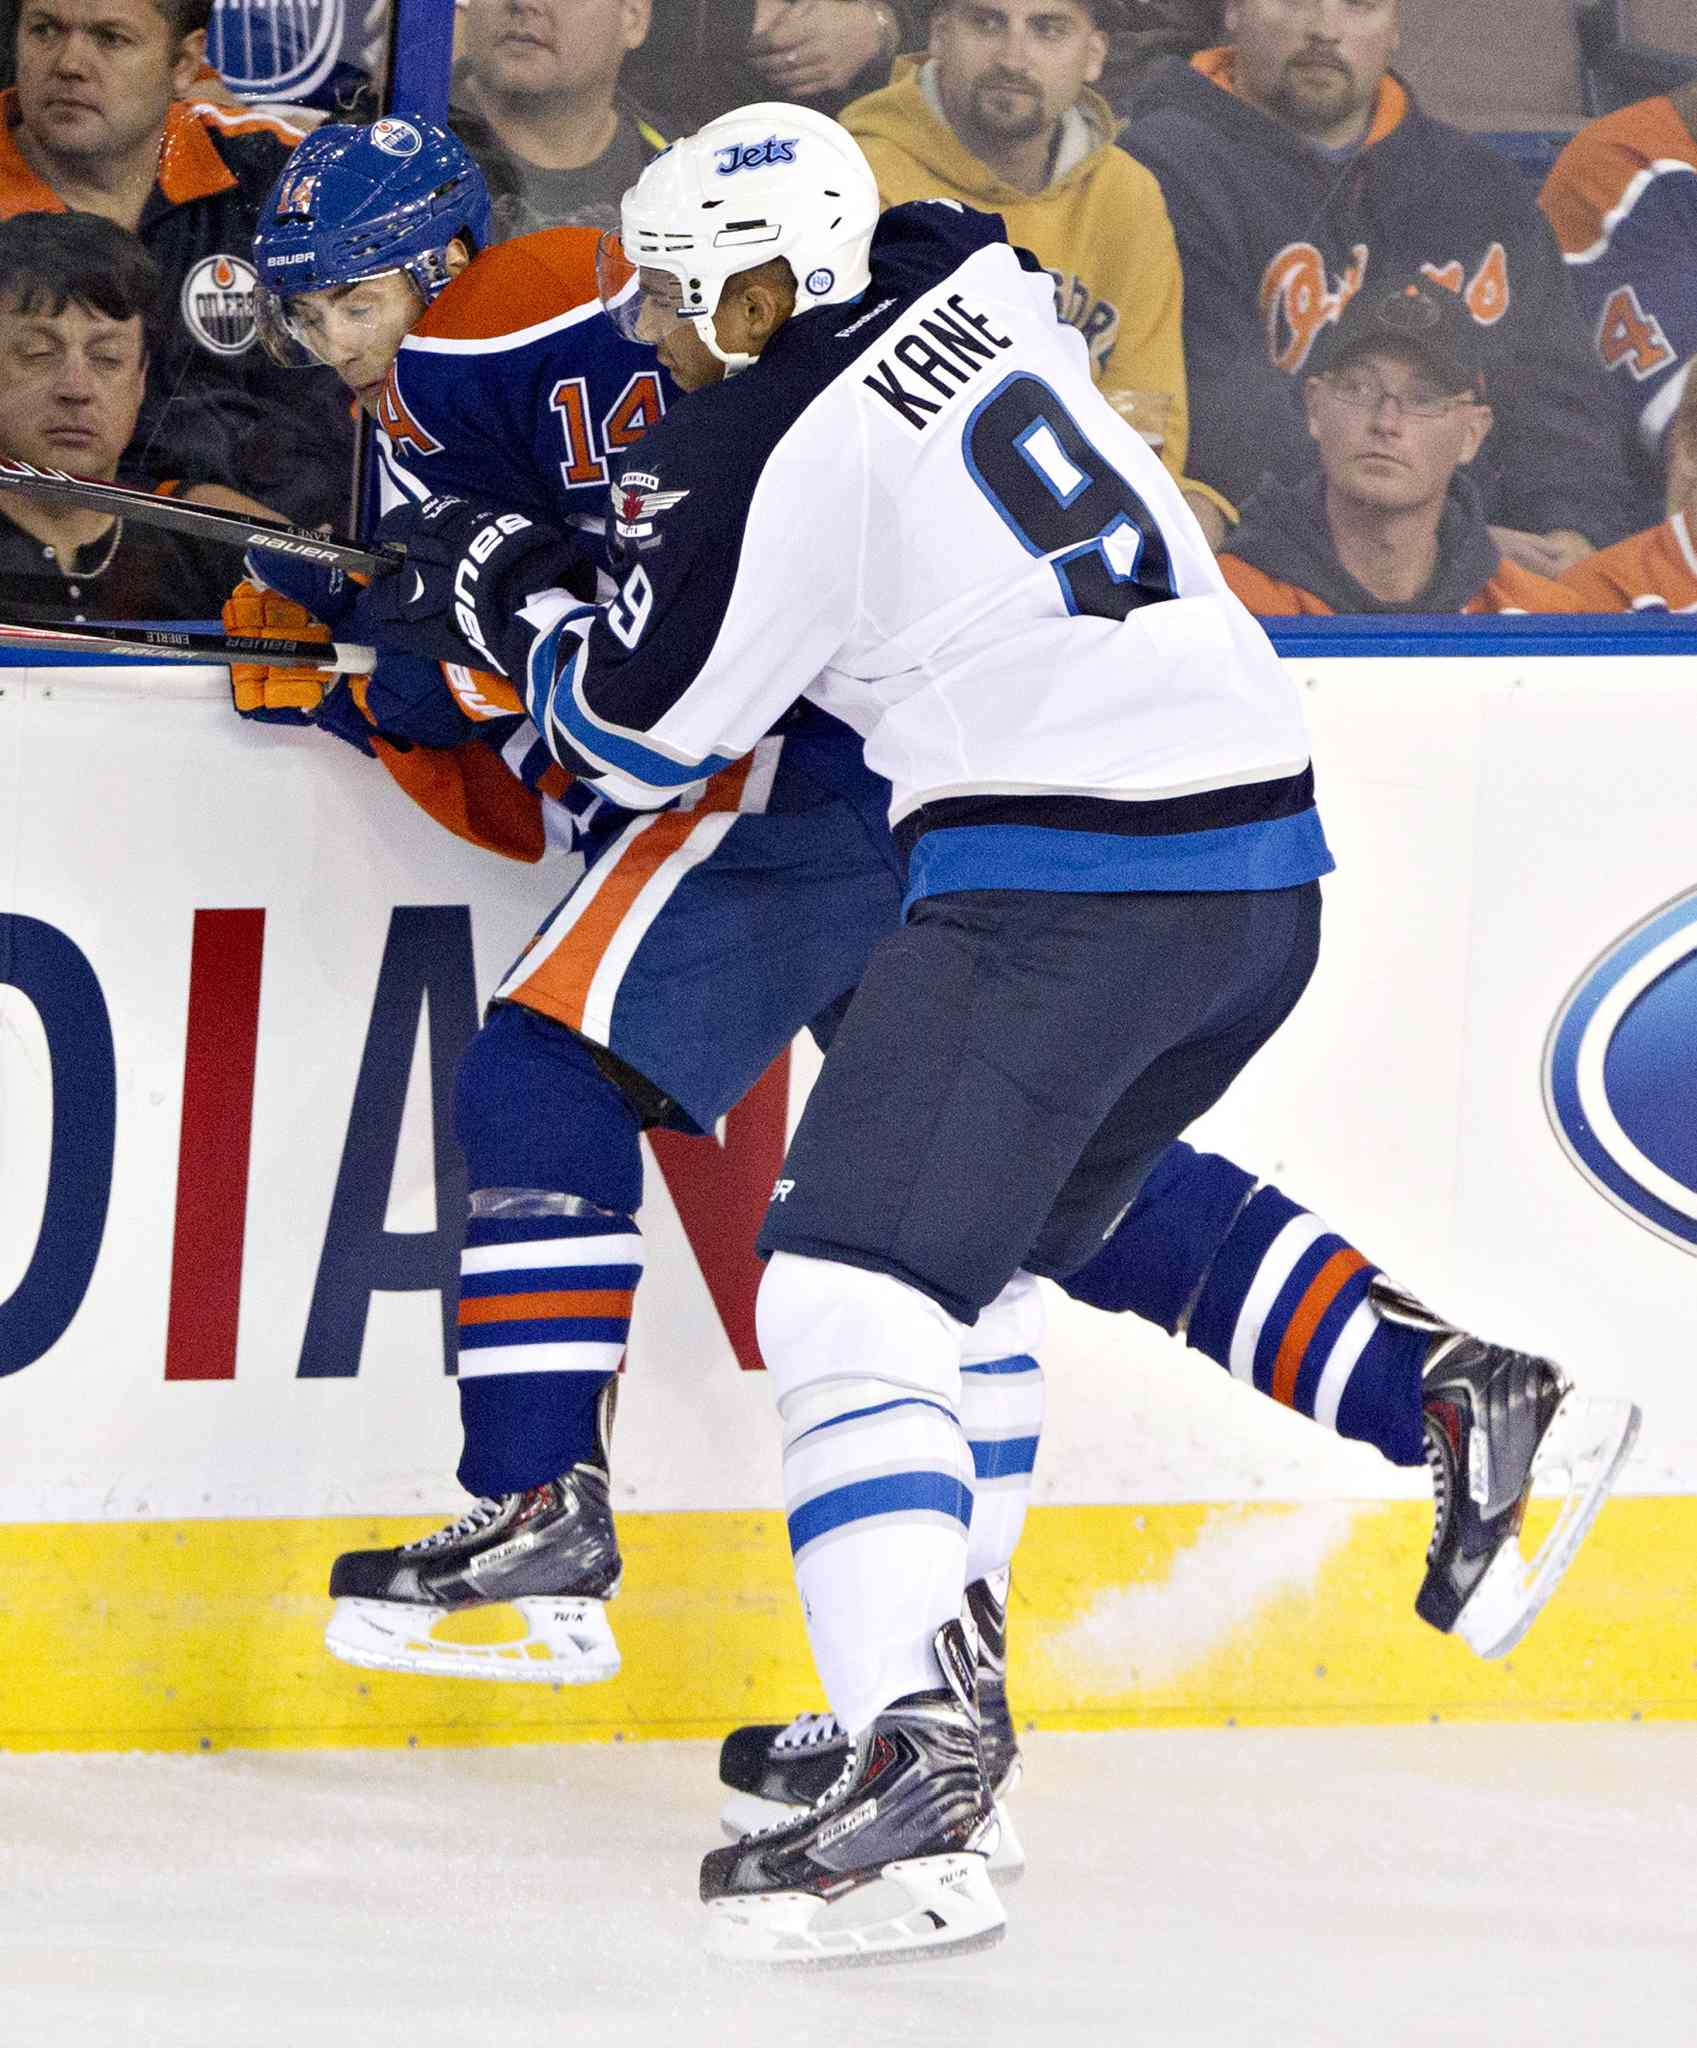 Winnipeg Jets' Evander Kane (9) checks Edmonton Oilers' Jordan Eberle (14) during first-period NHL hockey action in Edmonton Tuesday.